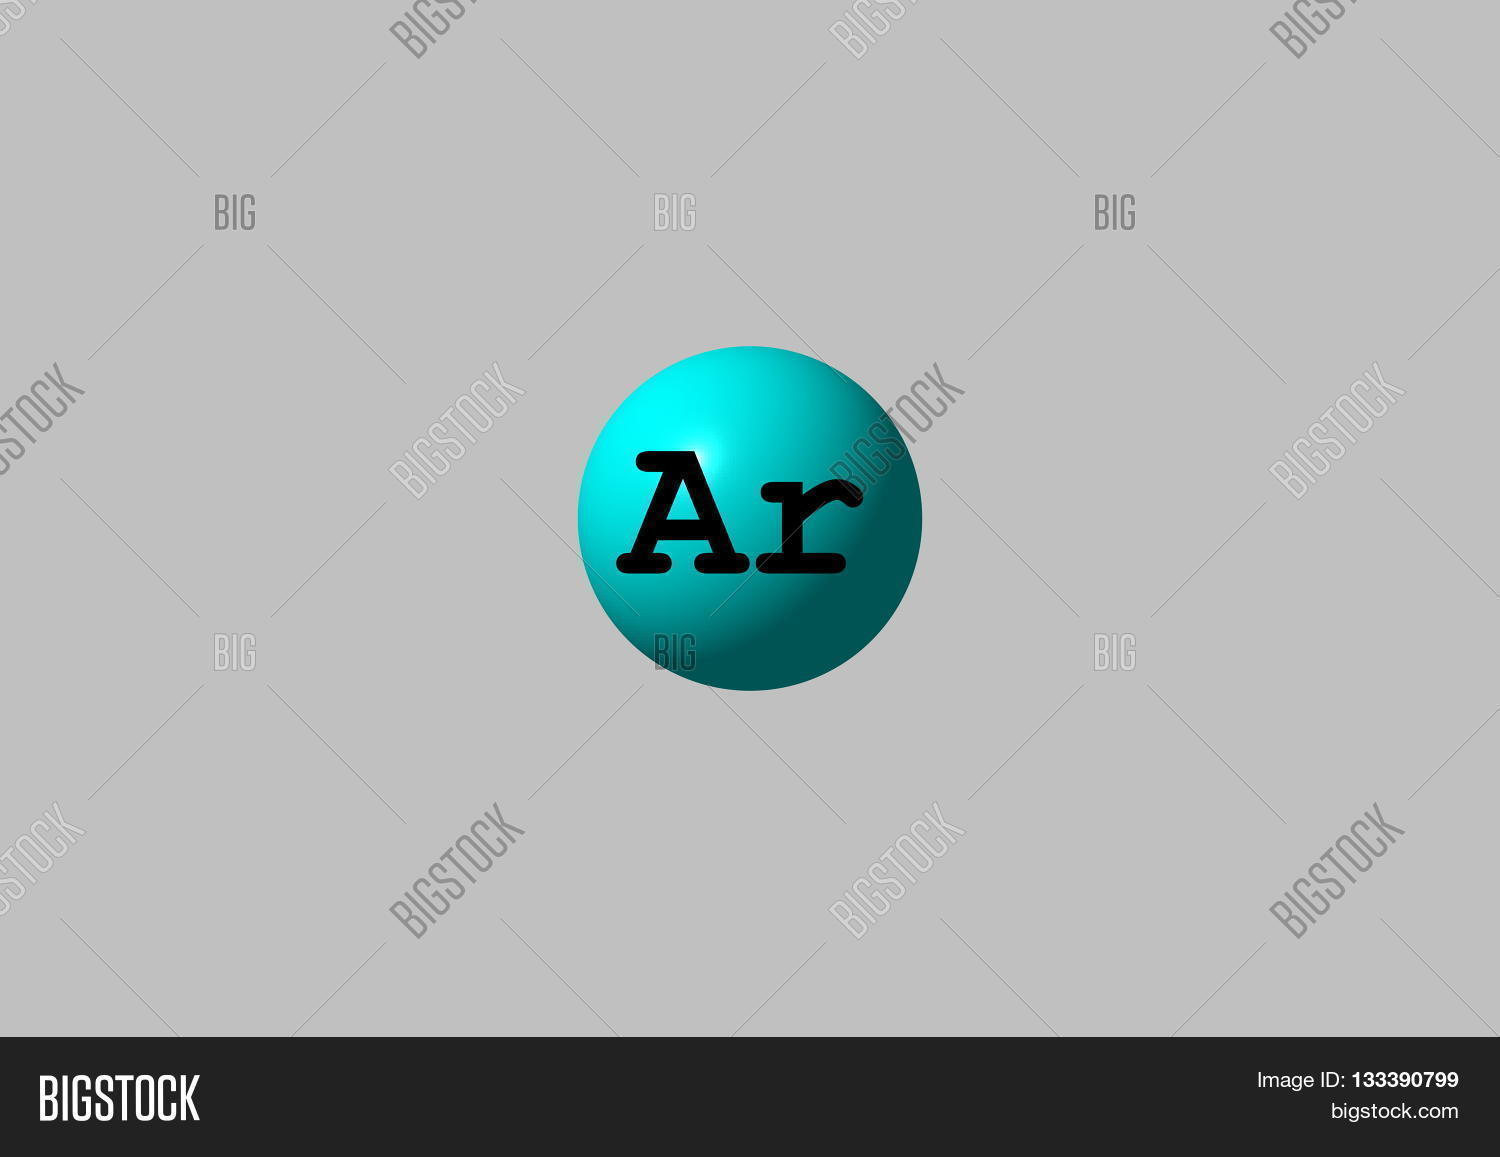 What is argon symbol gallery symbol and sign ideas argon chemical element symbol ar image photo bigstock argon is a chemical element with symbol ar buycottarizona